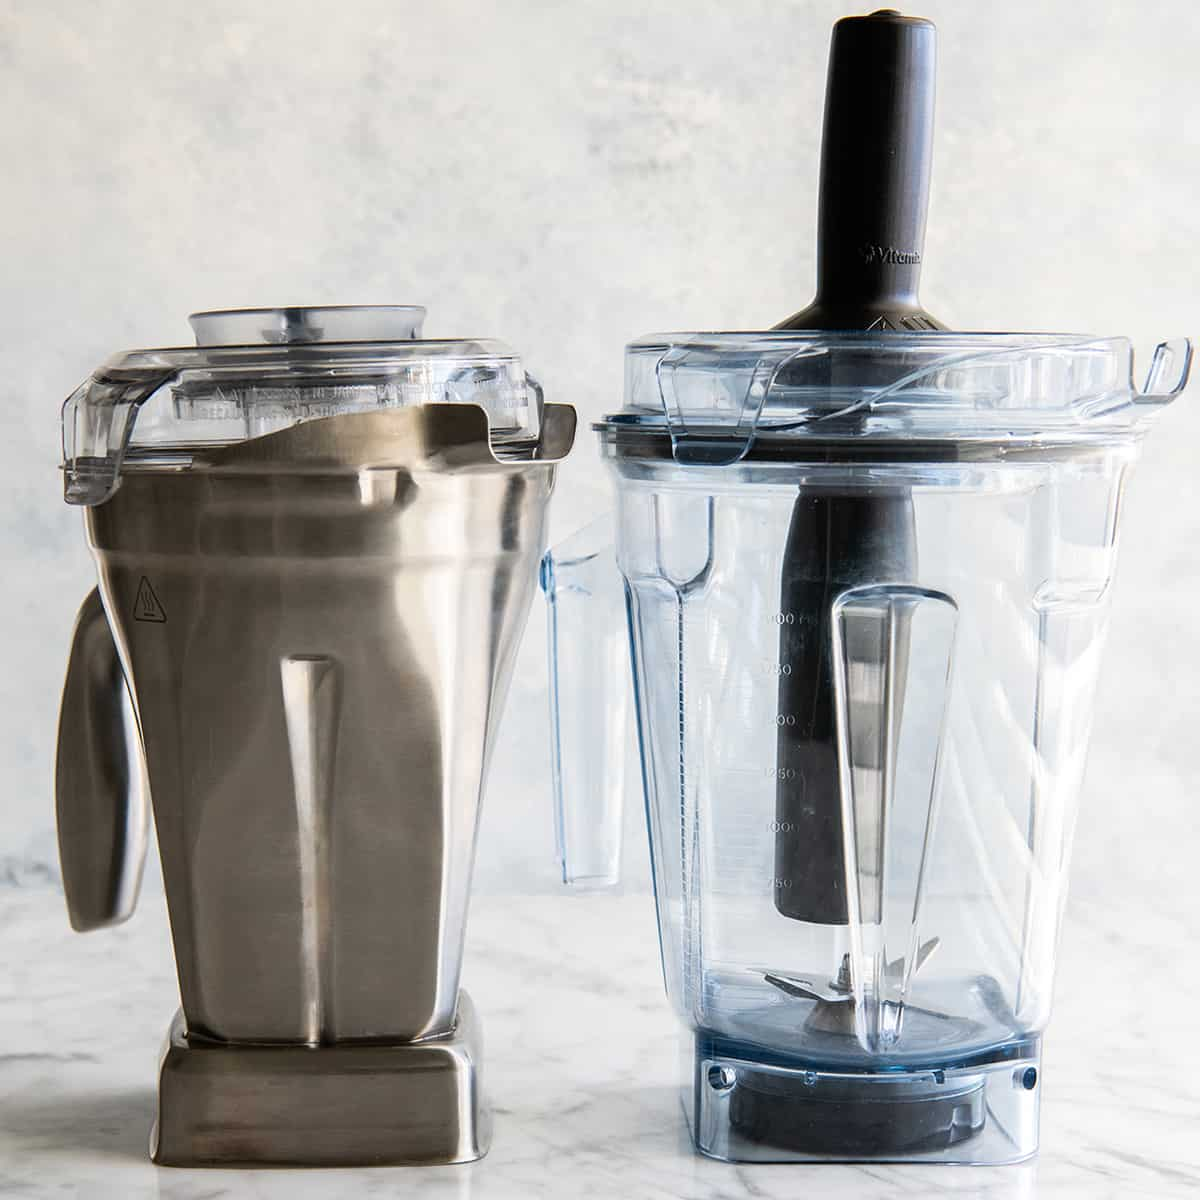 comparison of vitamix stainless steel blending container and low profile self-detect container